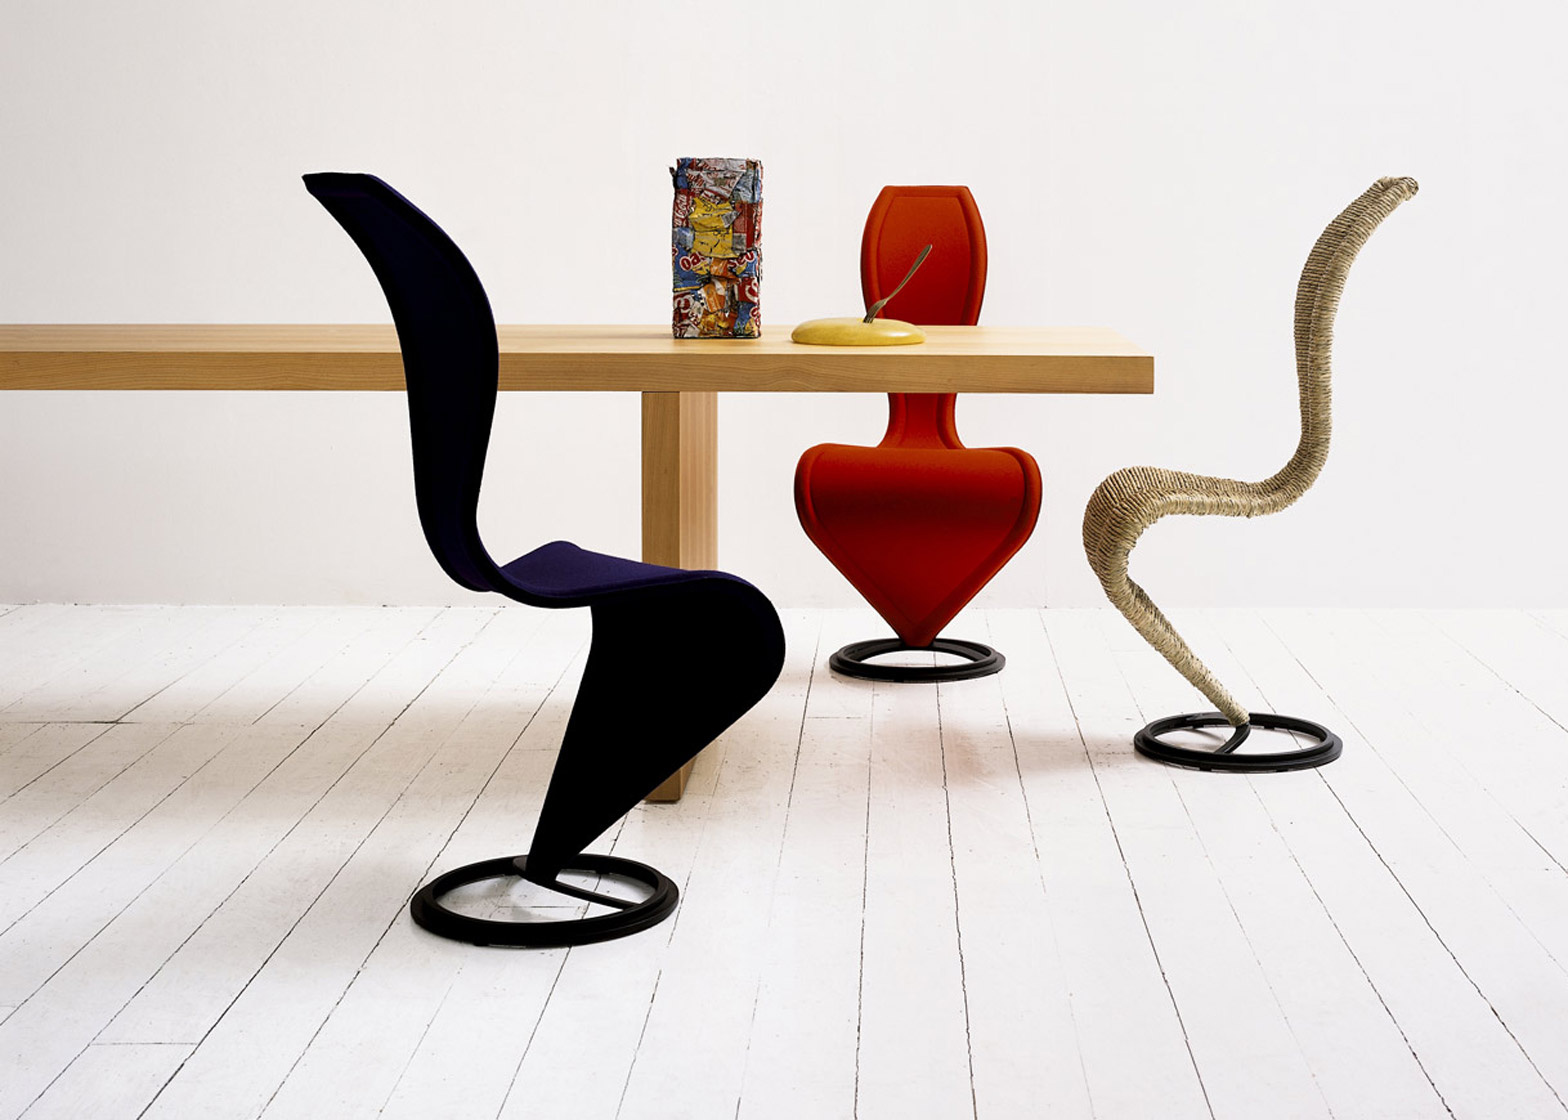 Furniture by Giulio Cappellini